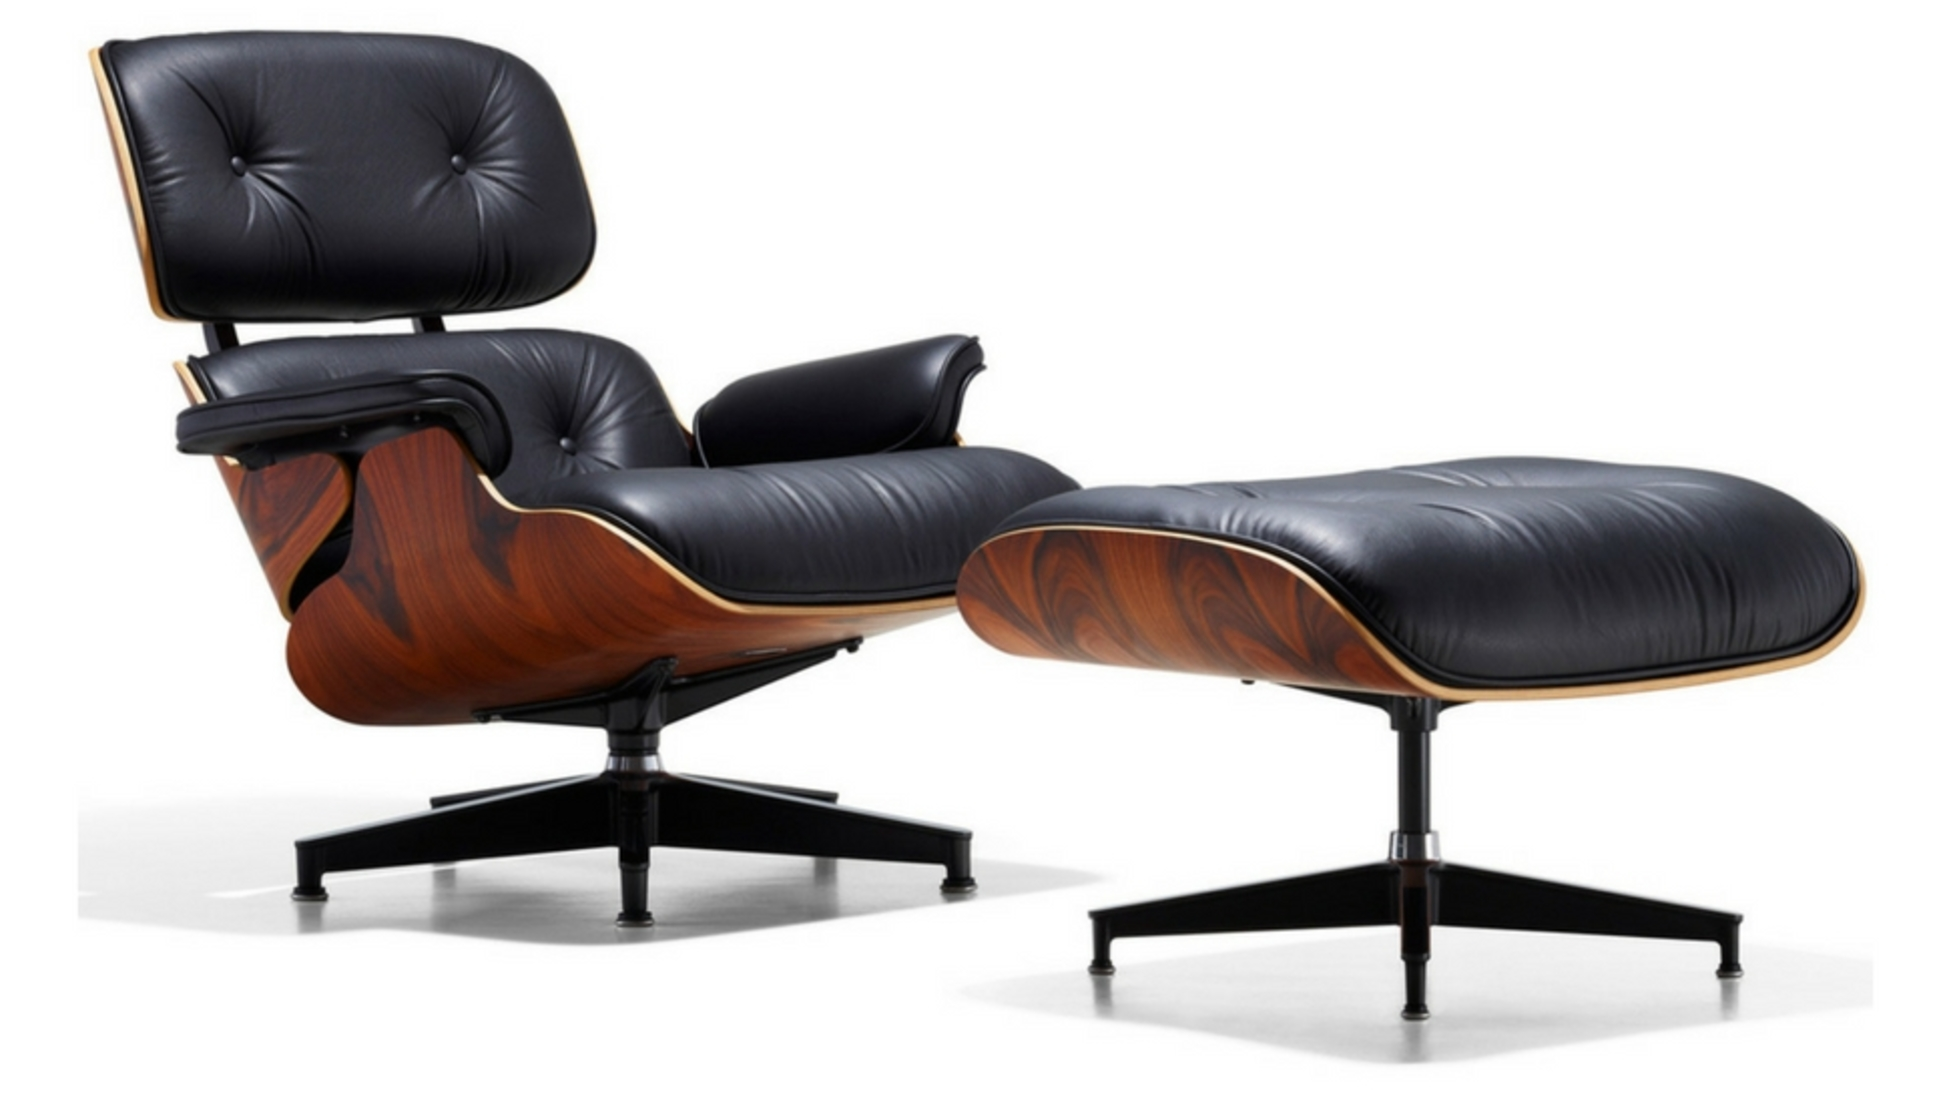 Great This Is Just One Of Their Many Designs, But Definitely The Most Famous One.  A Leather Lounge Chair With, As Charles Eames Stated, U201cthe Warm, Receptive  Look ...